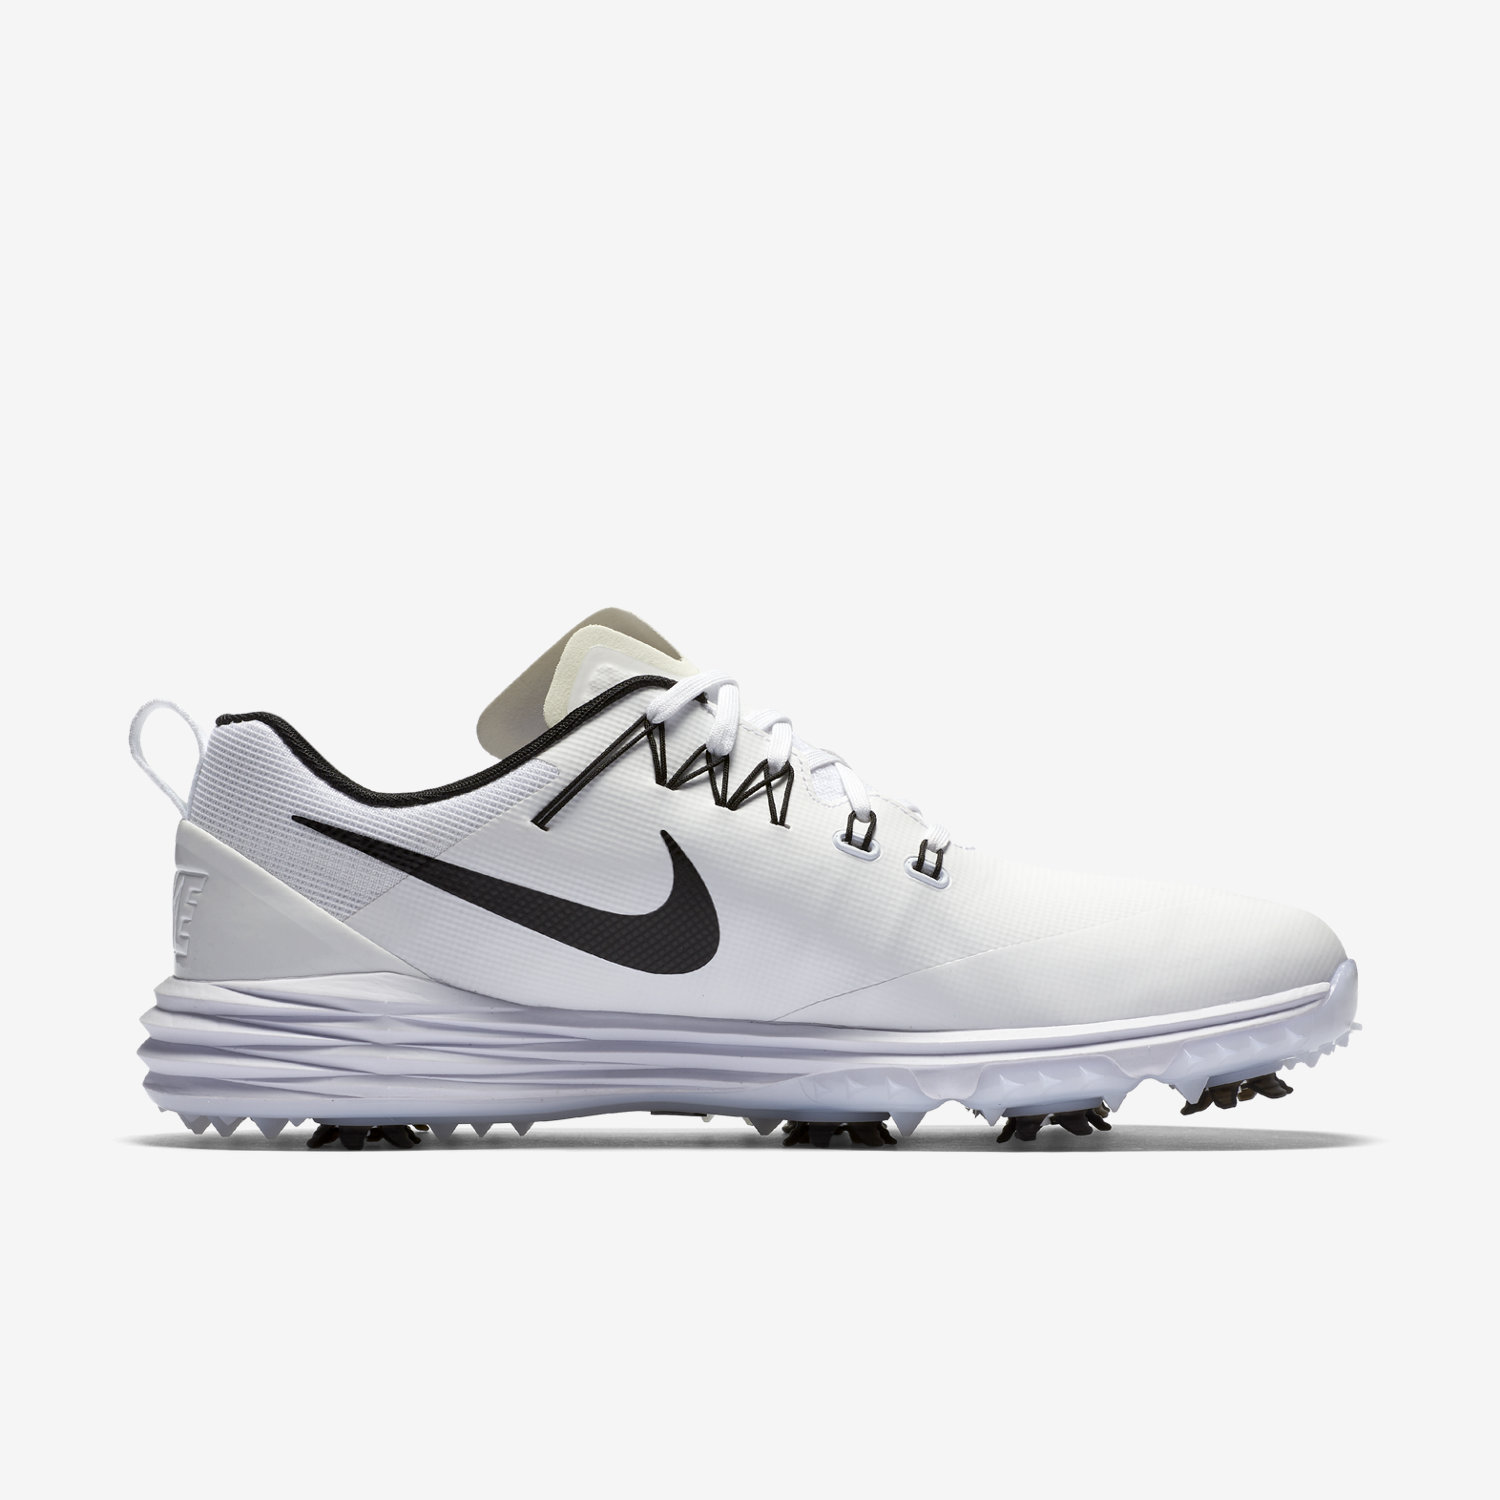 Cheap Nike Golf Shoes